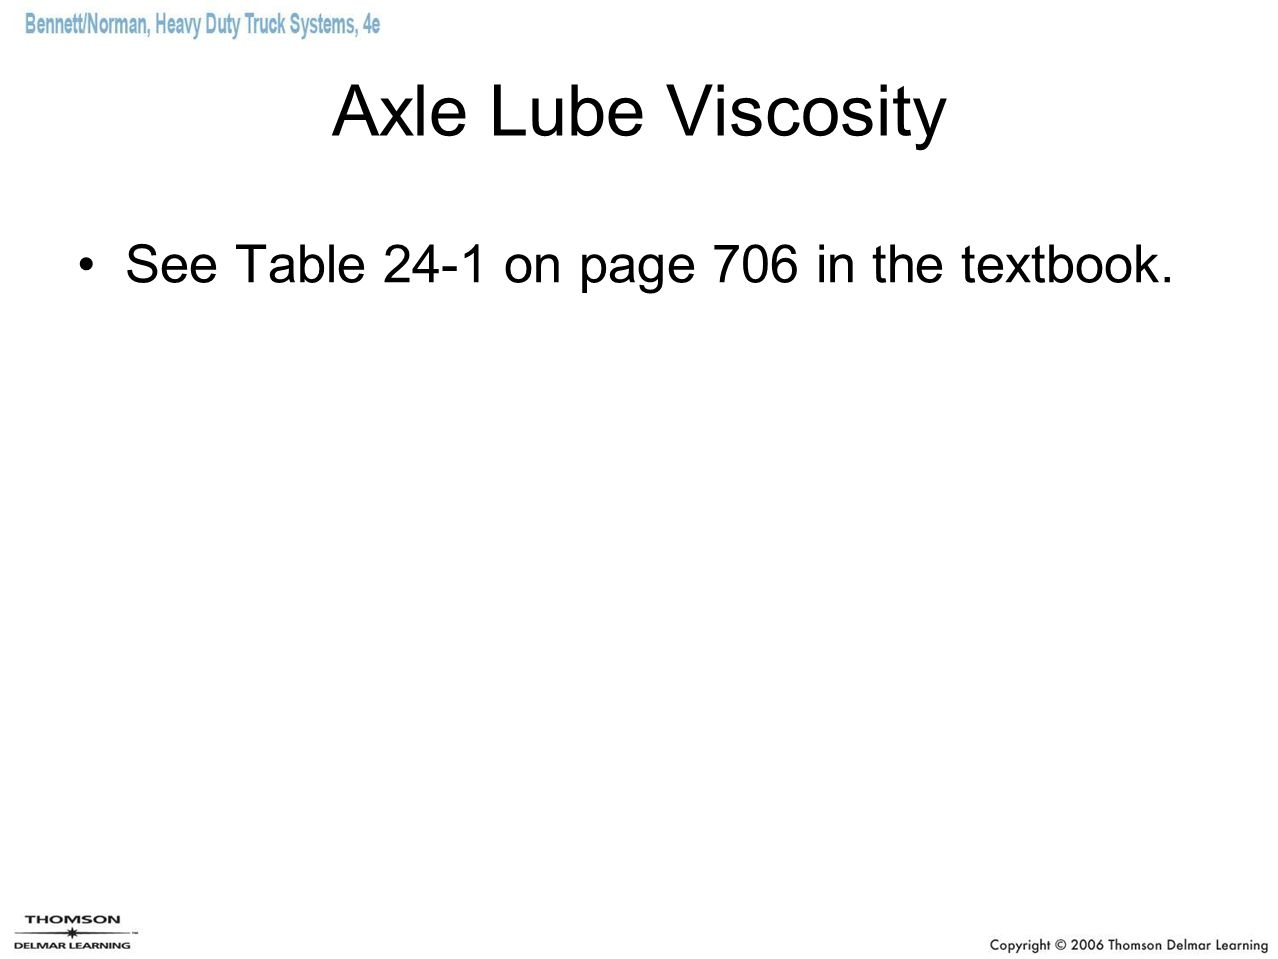 Axle Lube Viscosity See Table 24-1 on page 706 in the textbook.